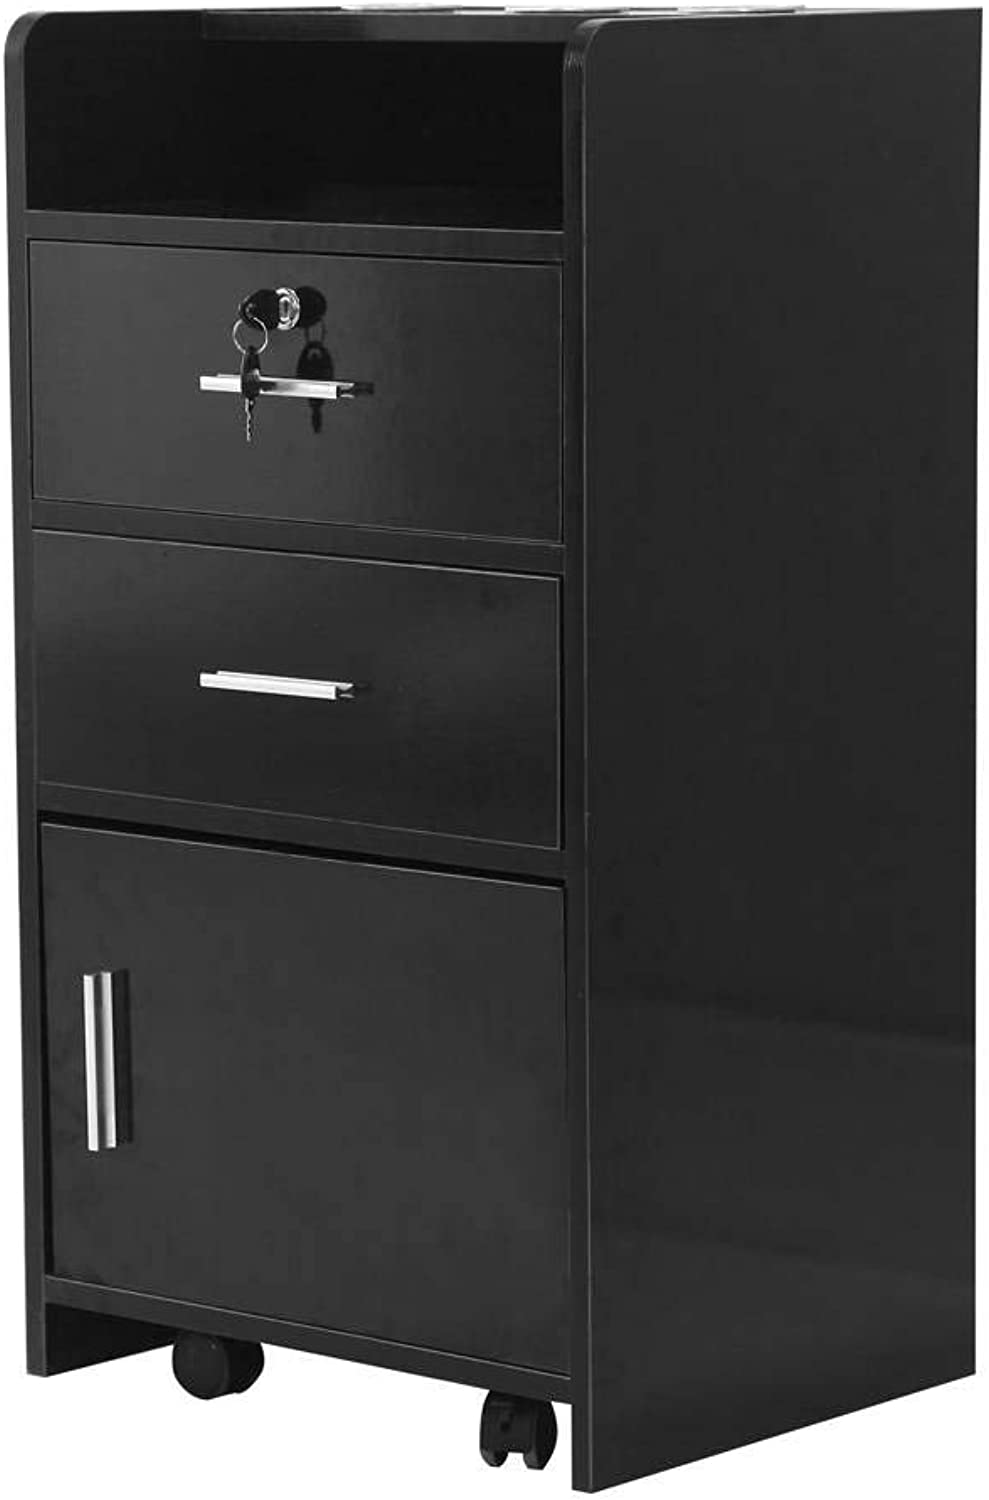 Salon Wood Rolling Drawer Cabinet Trolley Spa 3-Layer Cabinet Equipment with A Lock Black